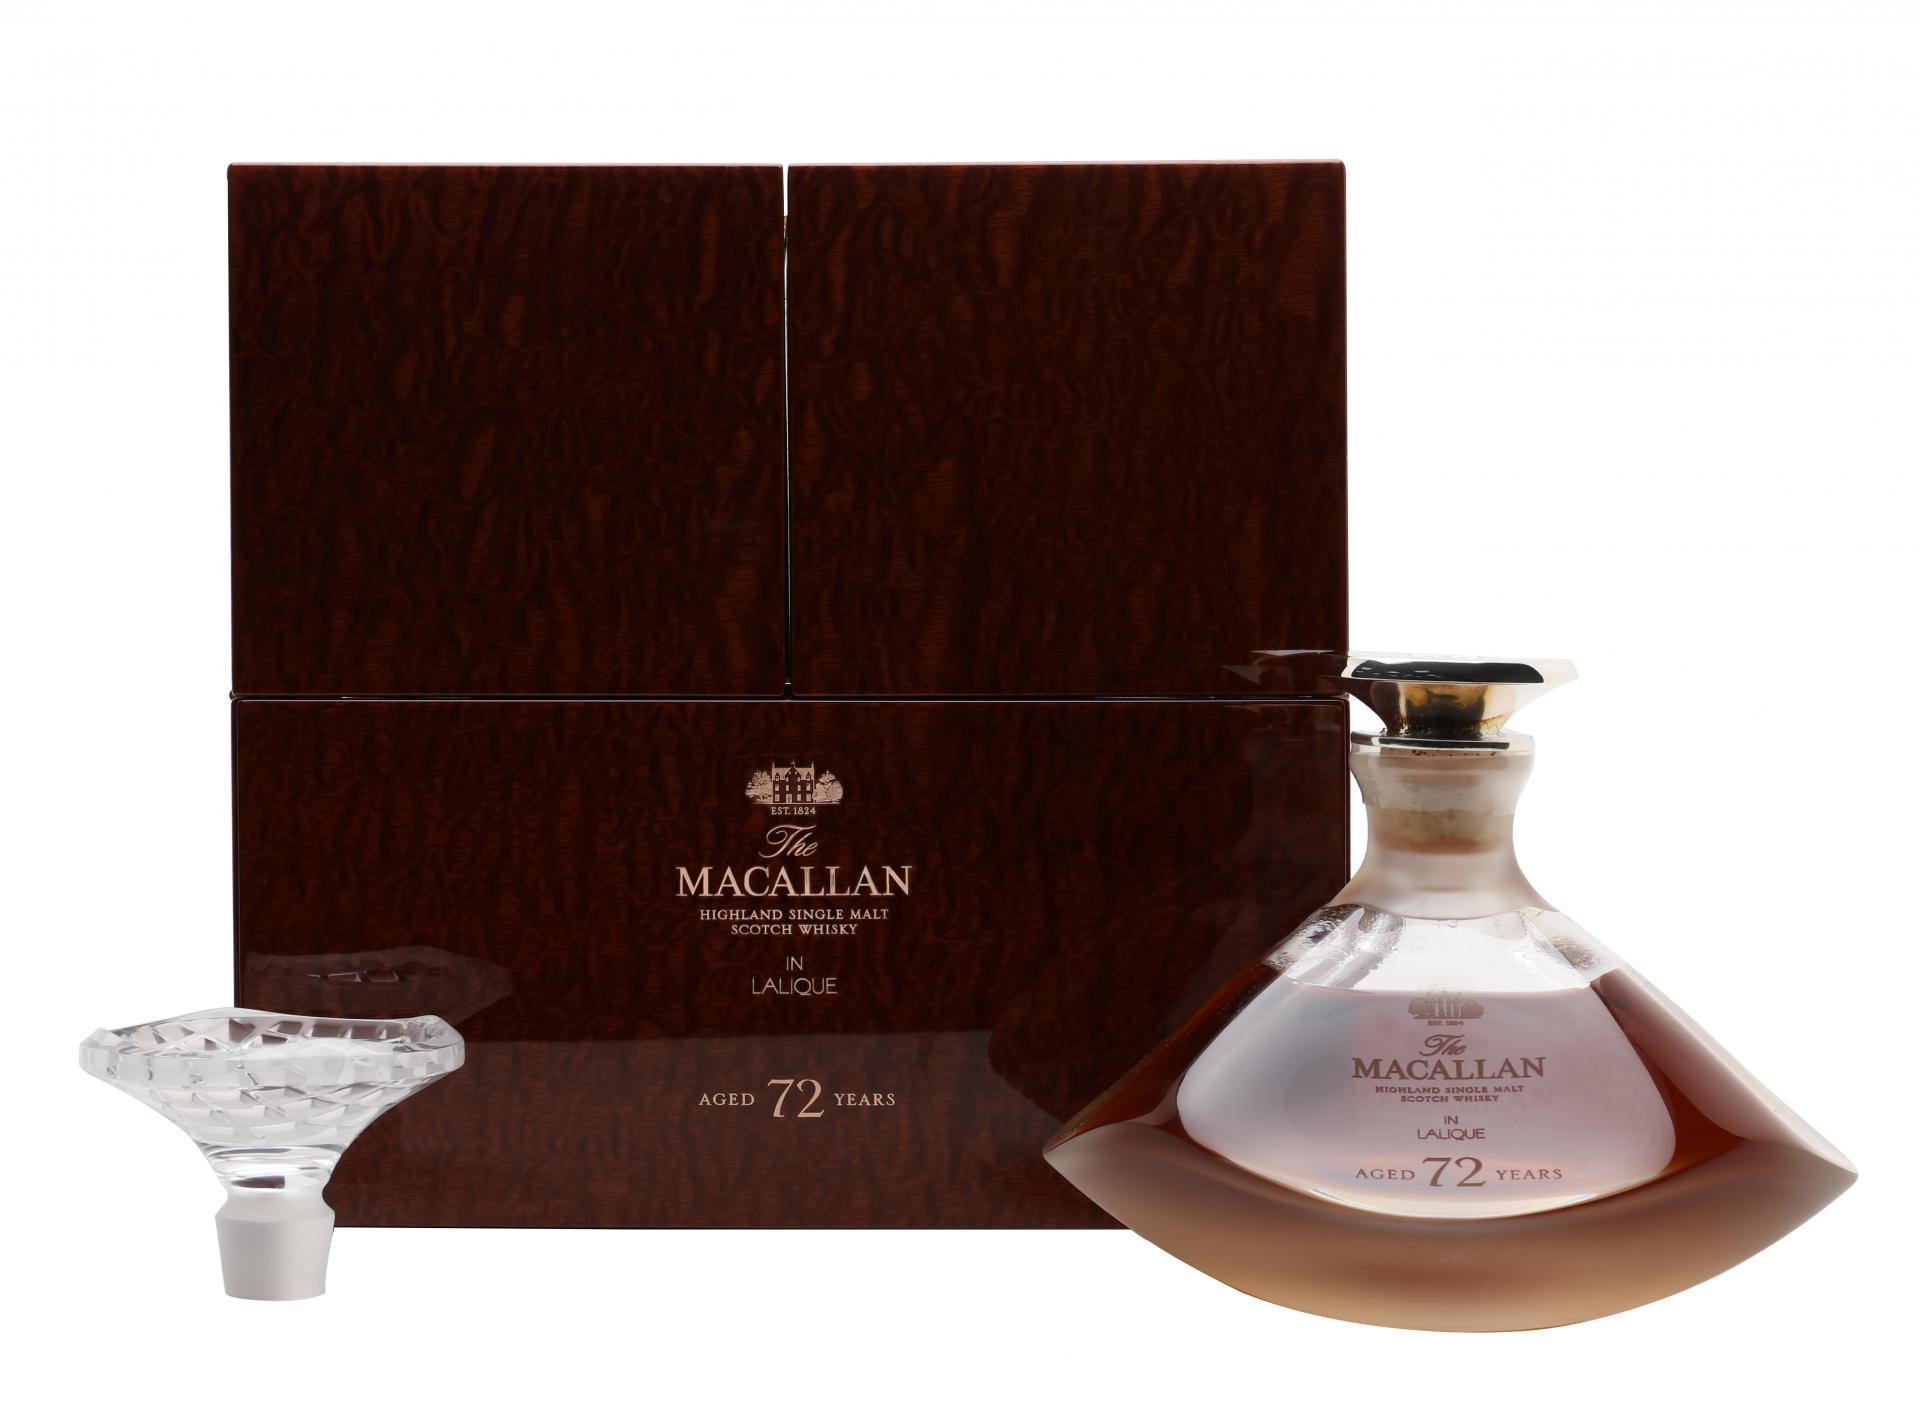 A bottle of The Macallan 72 Year Old in Lalique - The Genesis Decanter